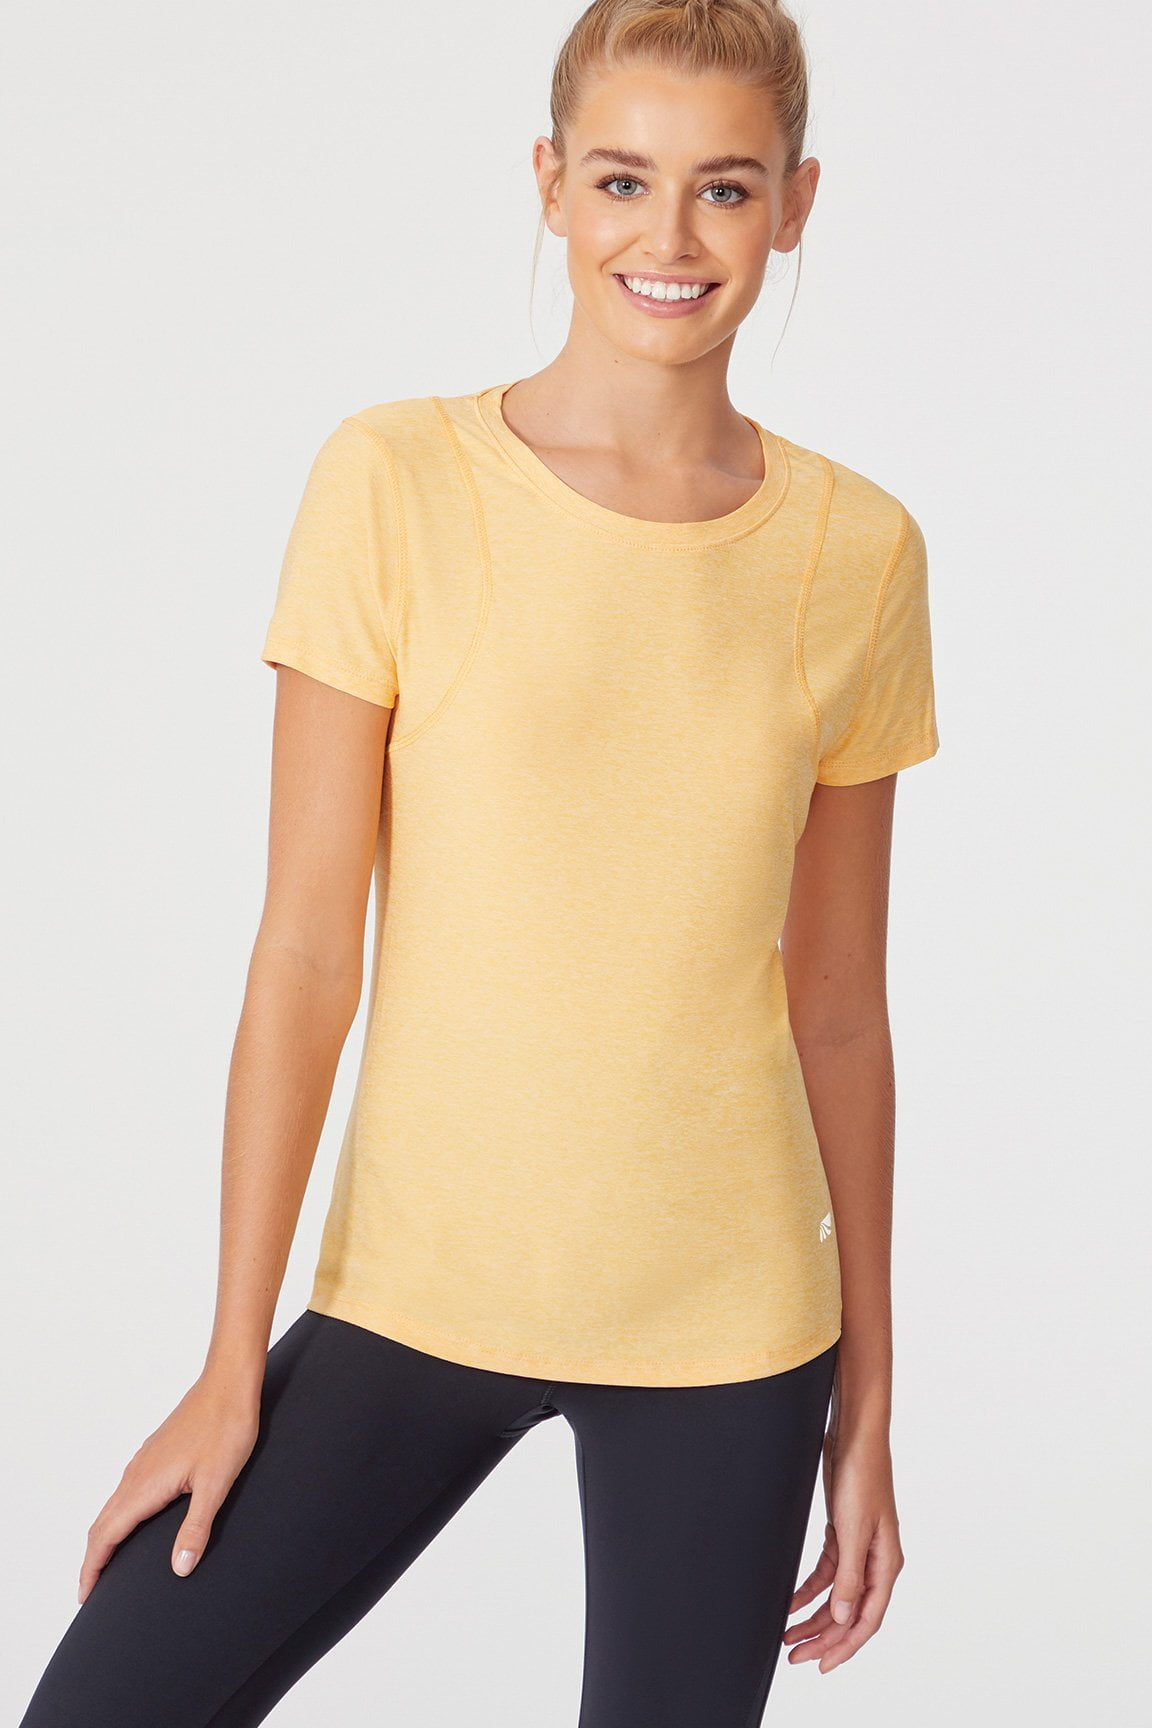 Finish Line Short Sleeve (Heather Artisan's Gold)